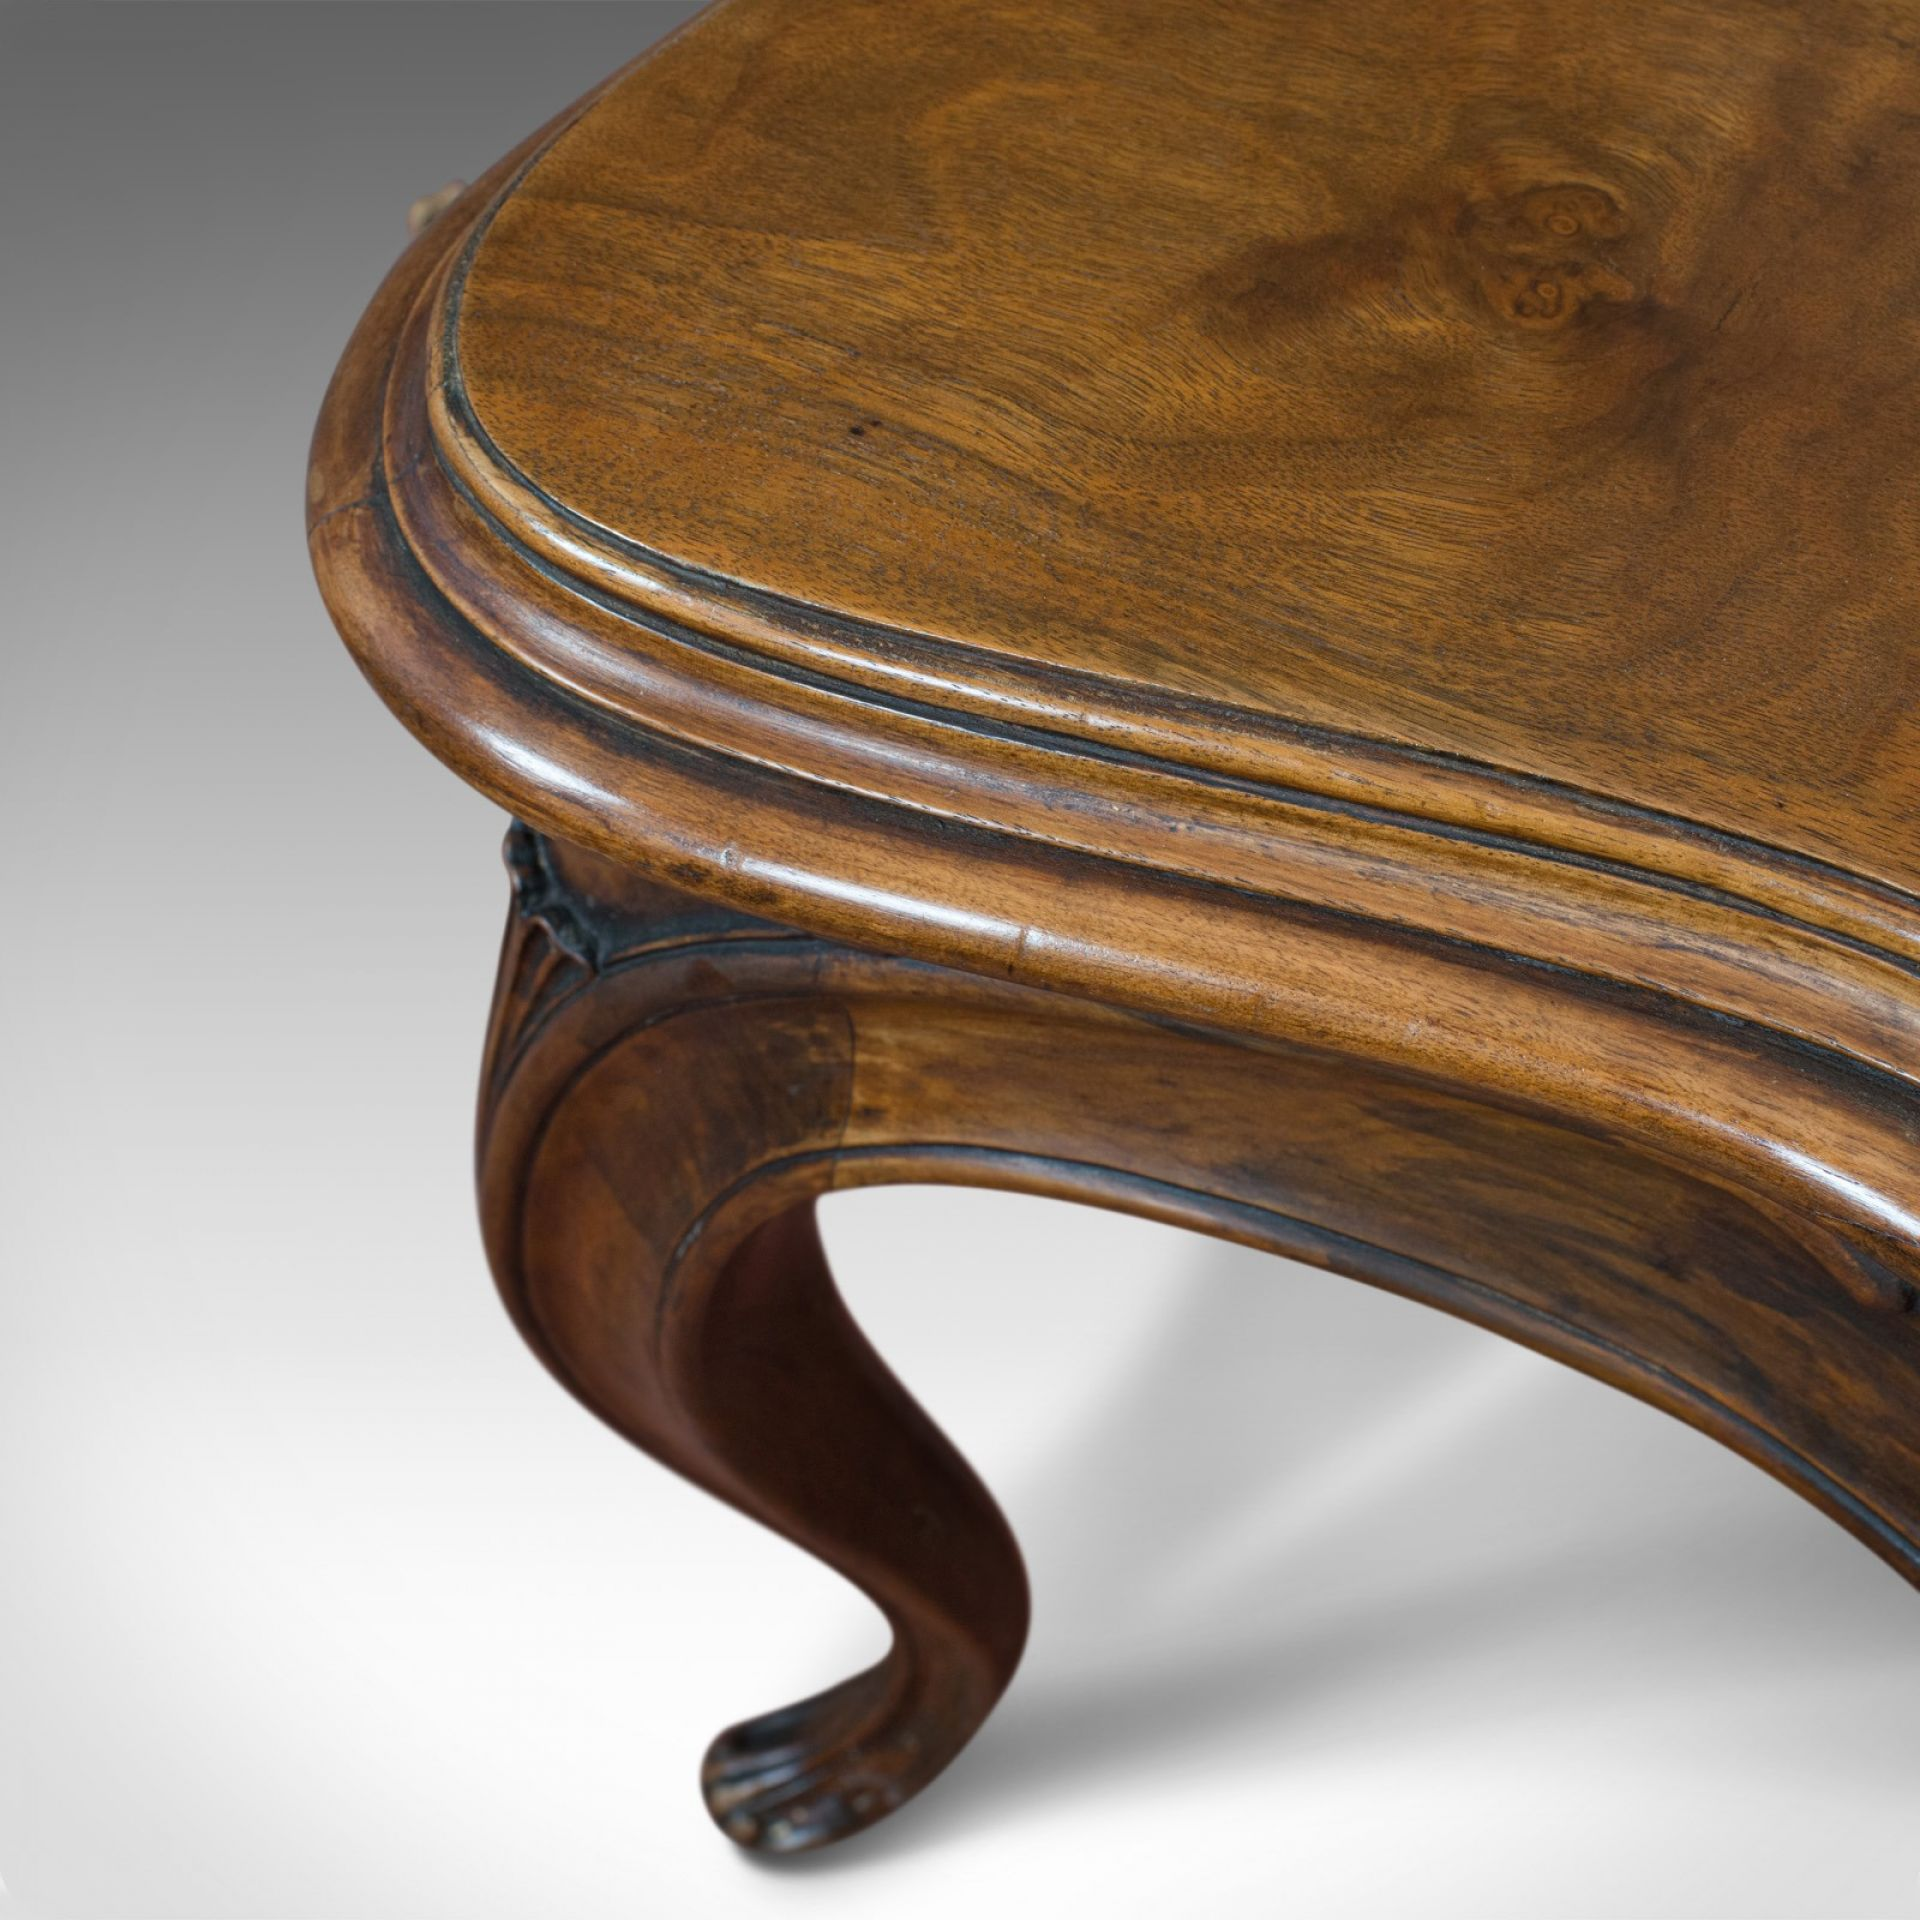 Antique Centre Table, French, Walnut, Serpentine, Occasional, Louis XV Taste